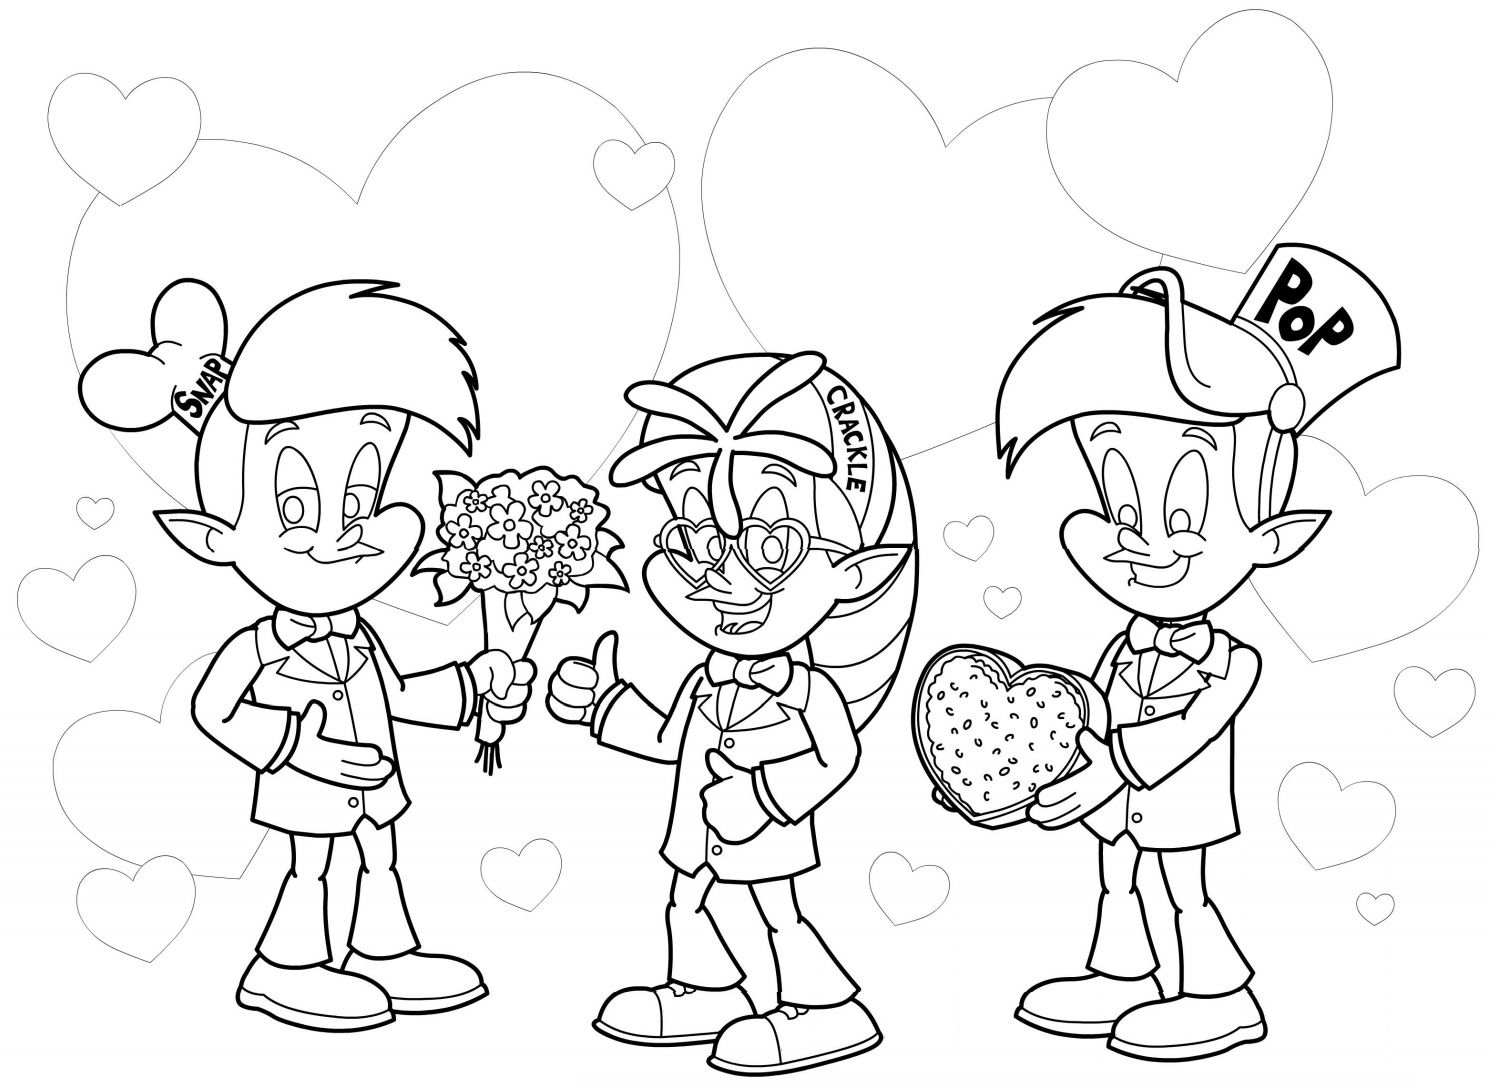 rice coloring pages for kids | rice krispies characters. snap, crackle, pop | Valentines ...